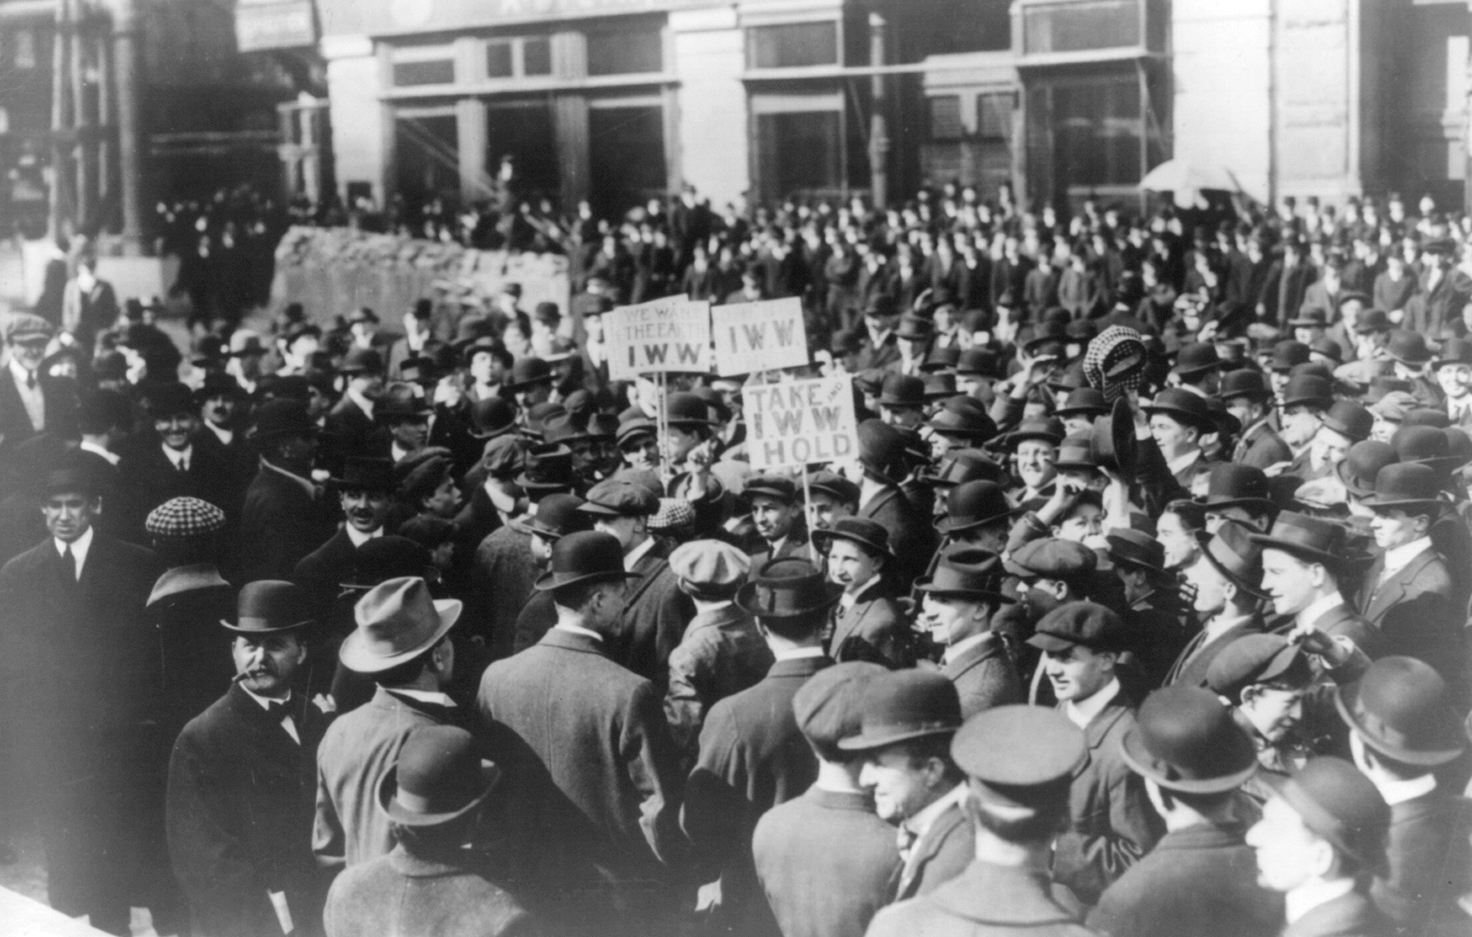 "The image ""http://upload.wikimedia.org/wikipedia/commons/5/59/IWW_demonstration_NY_1914.jpg"" cannot be displayed, because it contains errors."